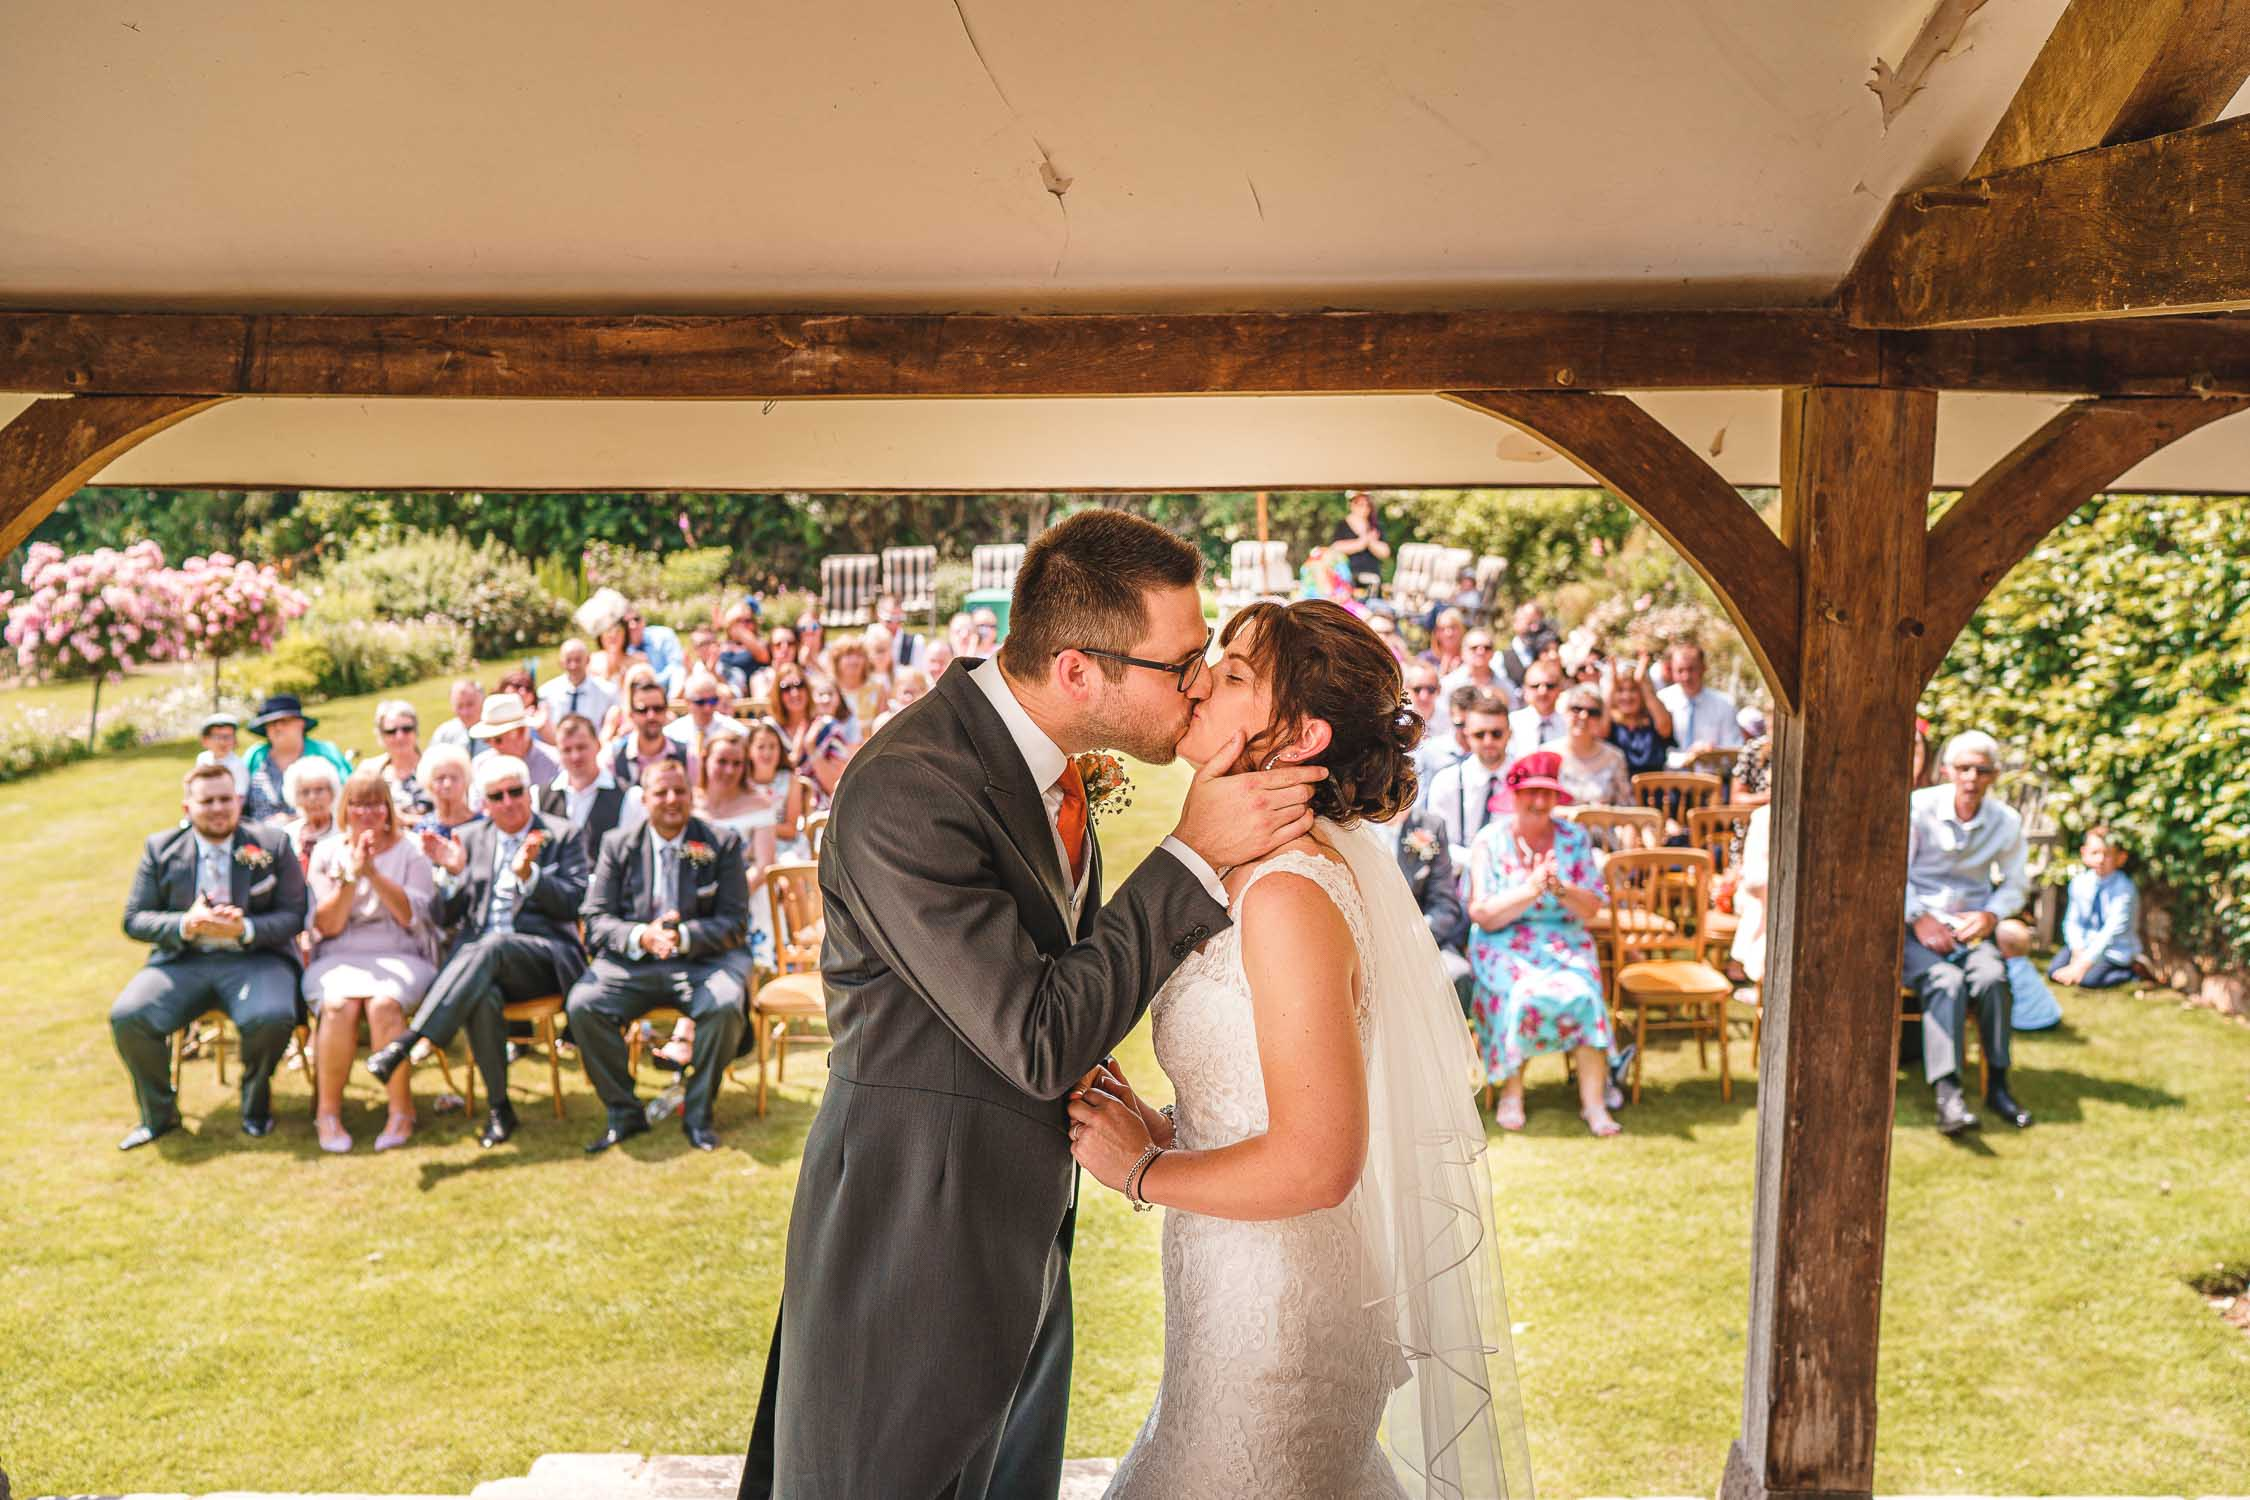 Lyde Arundel Wedding Photography, Wedding at Lyde Arundel, Lyde arundel wedding photographer